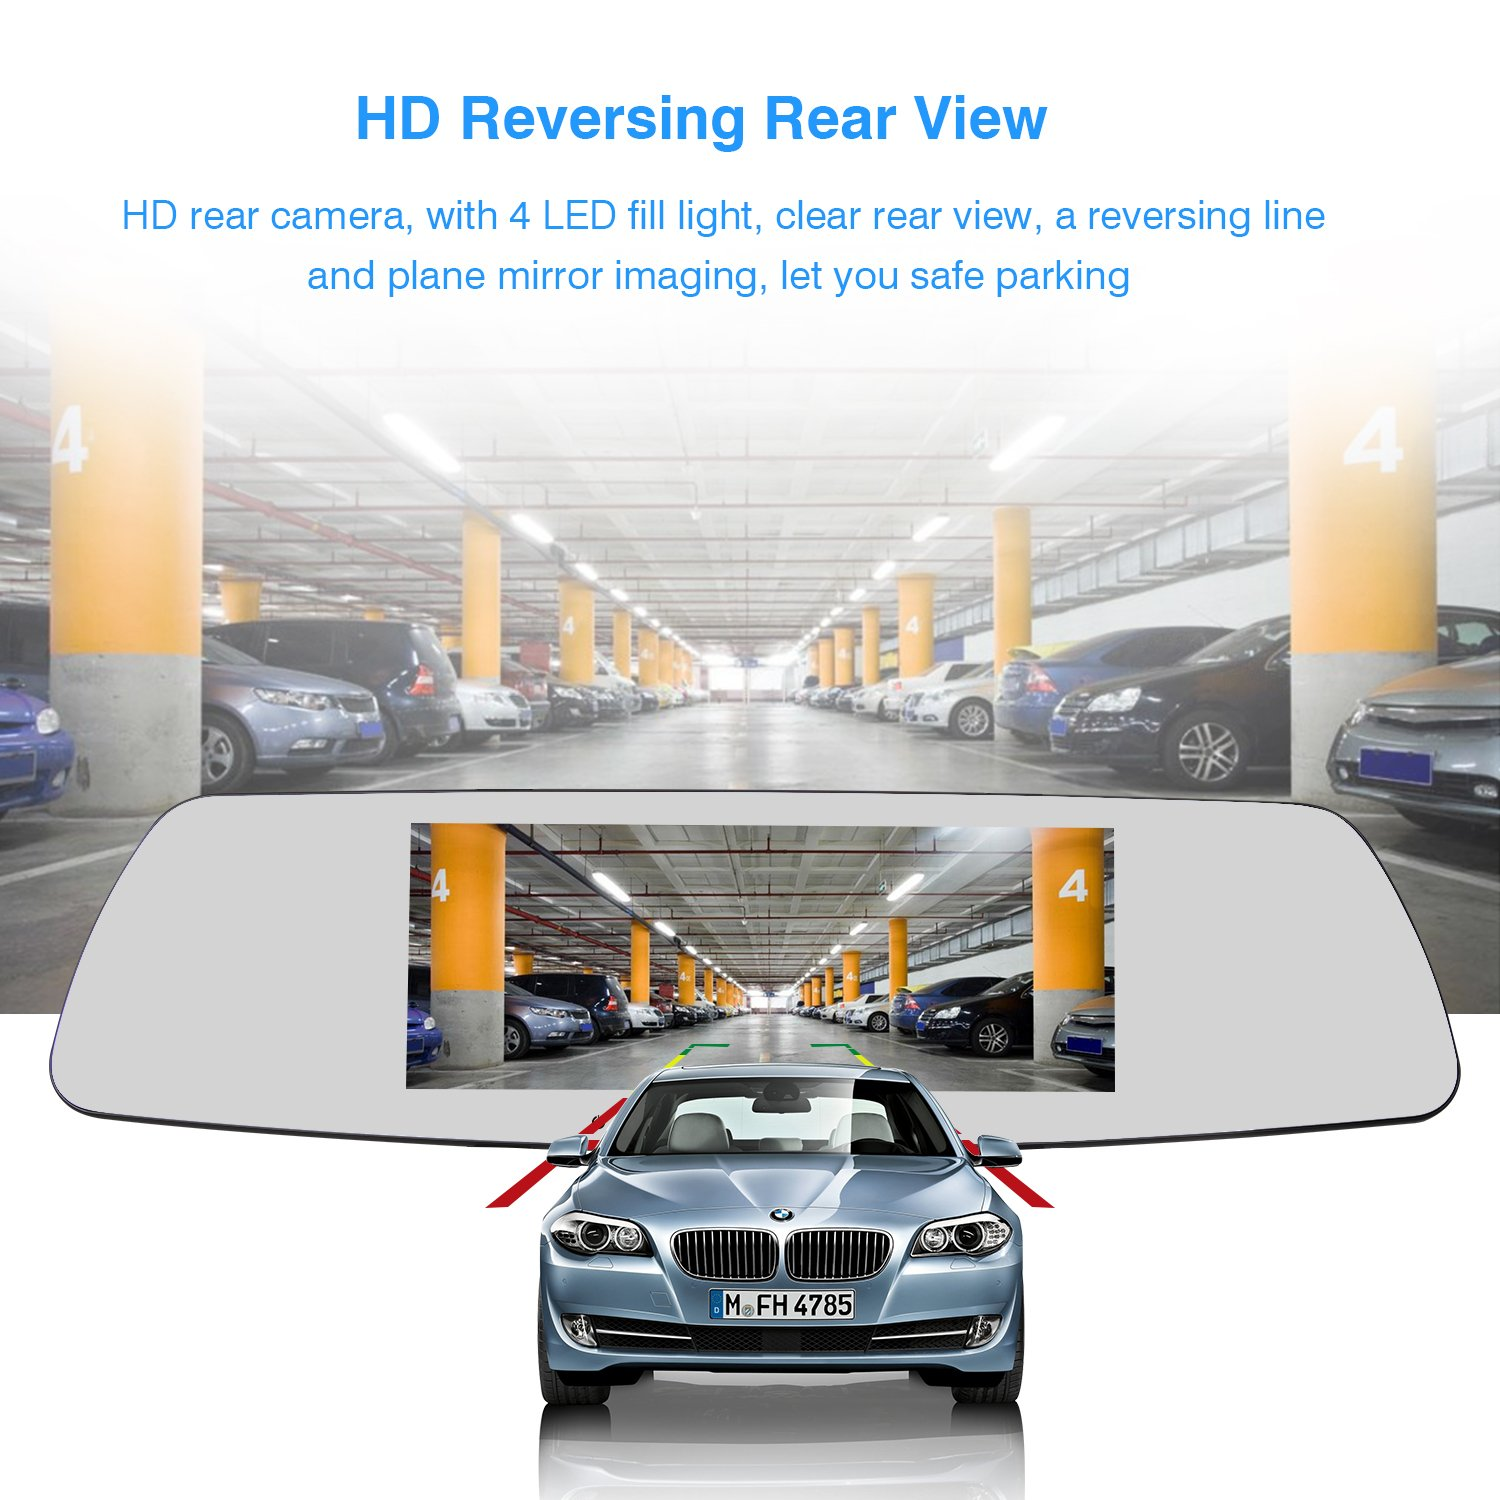 SENDOW Mirror Dual Dash Camera 7 Inch 1080P IPS Touch Screen 170° Wide Angle Rearview Dash Camera Vehicle Recorder, Car DVR with Parking Monitor WDR Loop Recording by SENDOW (Image #3)